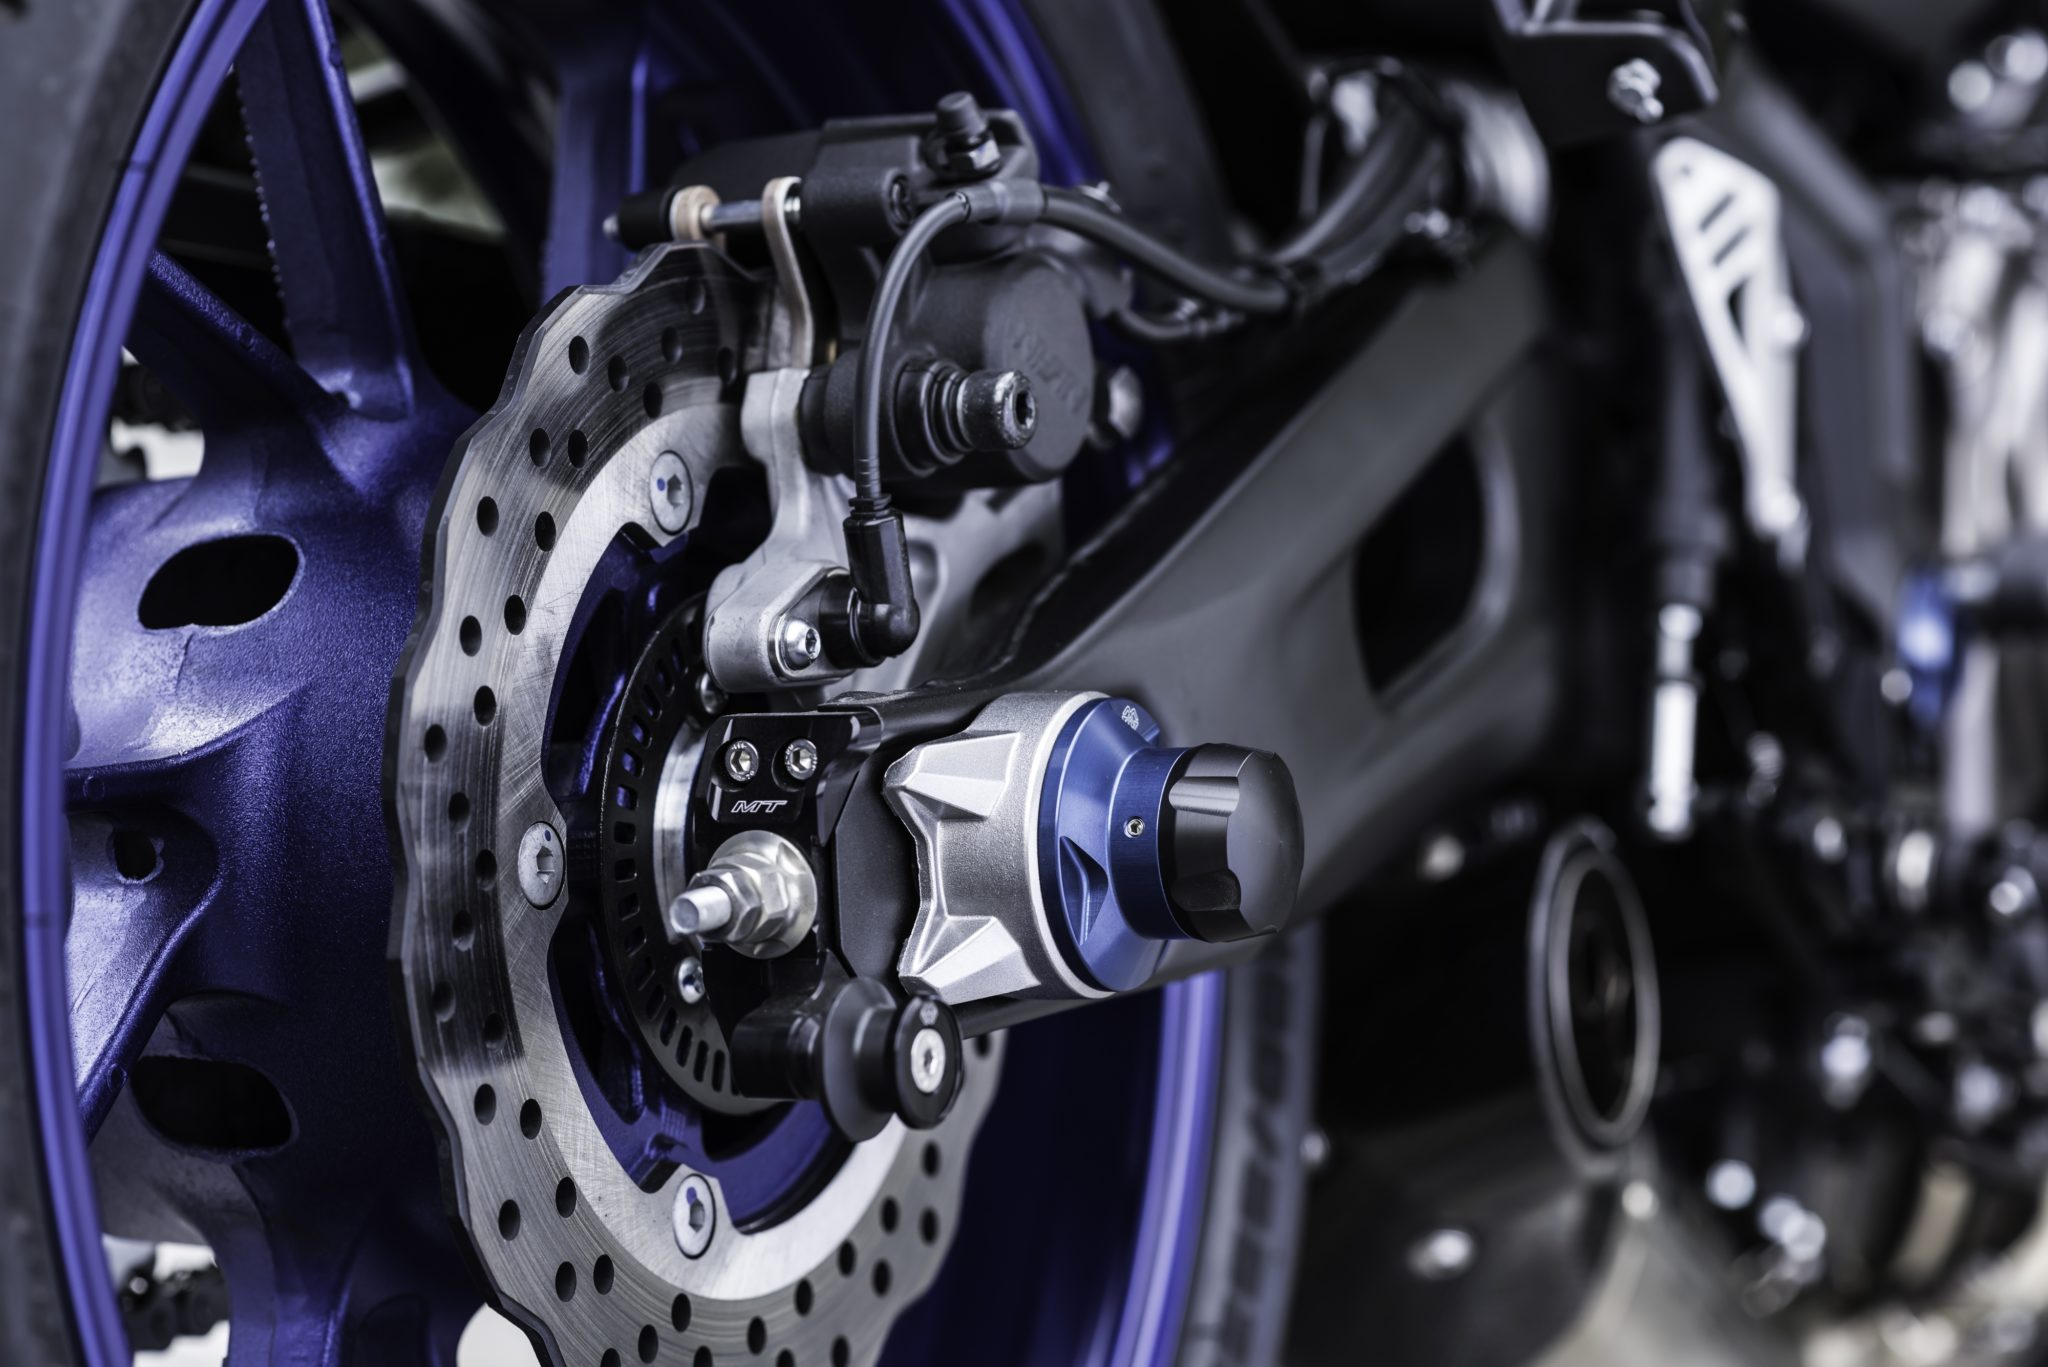 know your way around a motorcycle engine